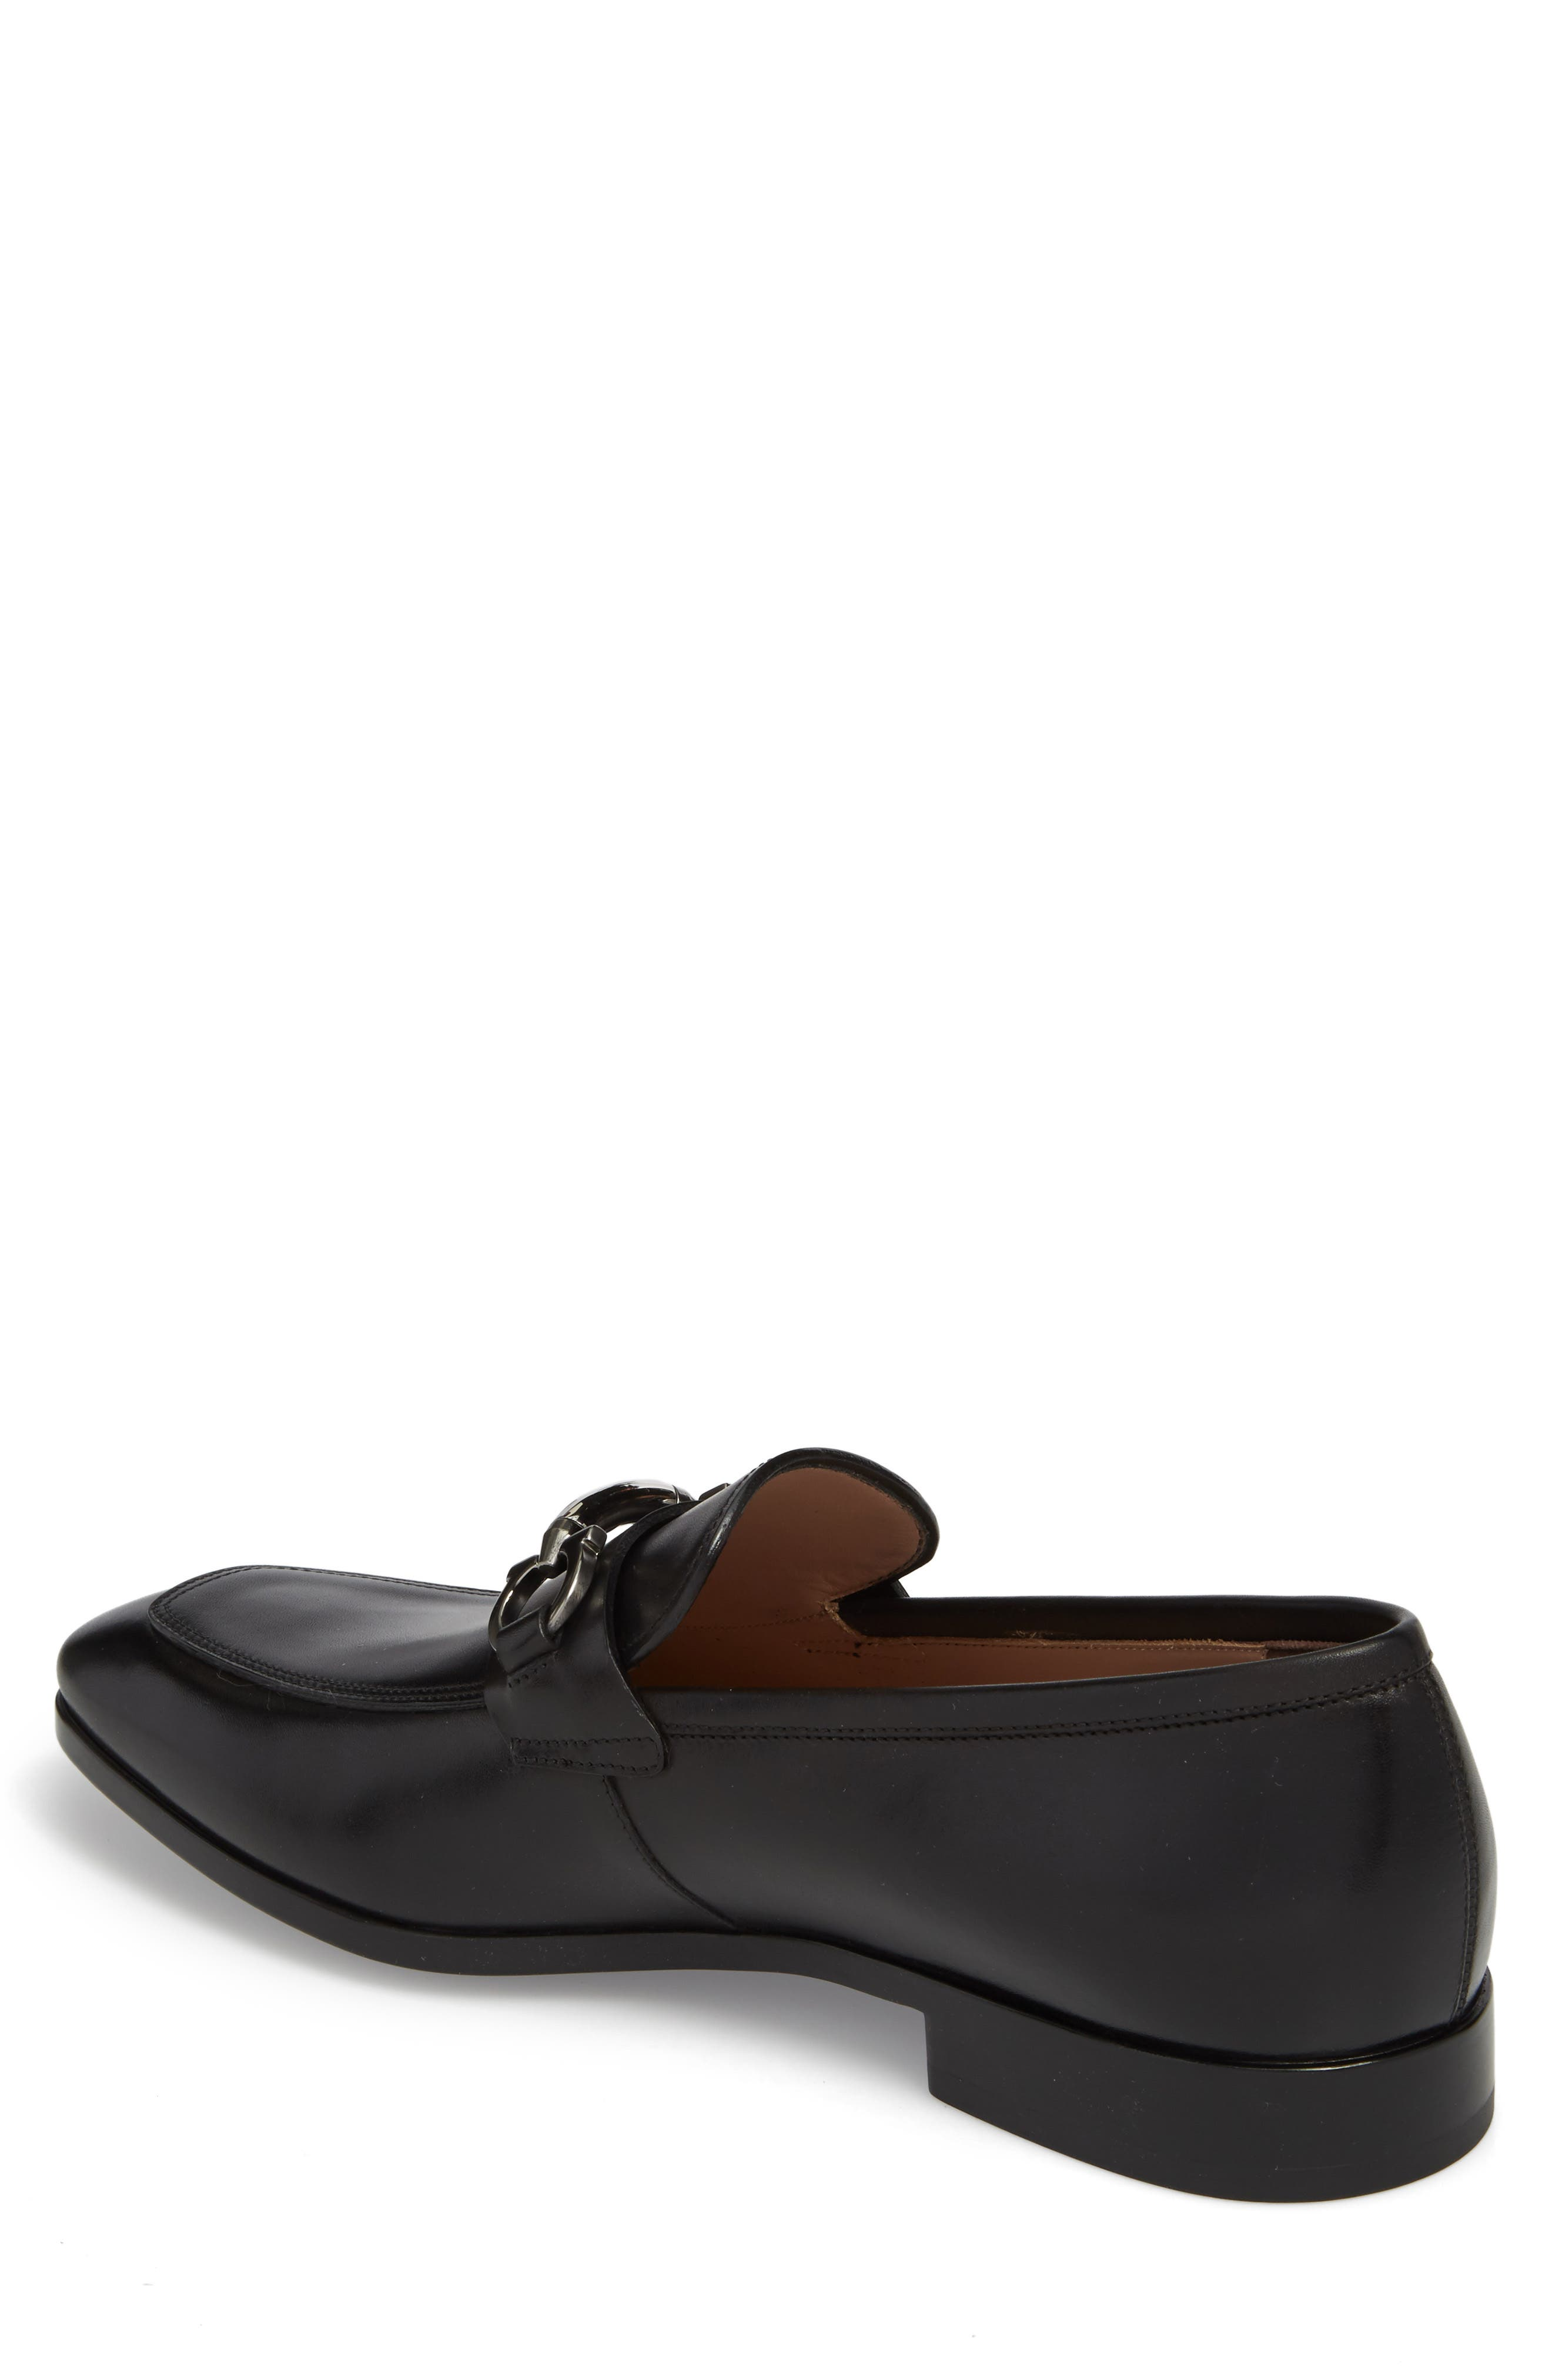 SALVATORE FERRAGAMO, Benford Rounded Bit Loafer, Alternate thumbnail 2, color, NERO LEATHER